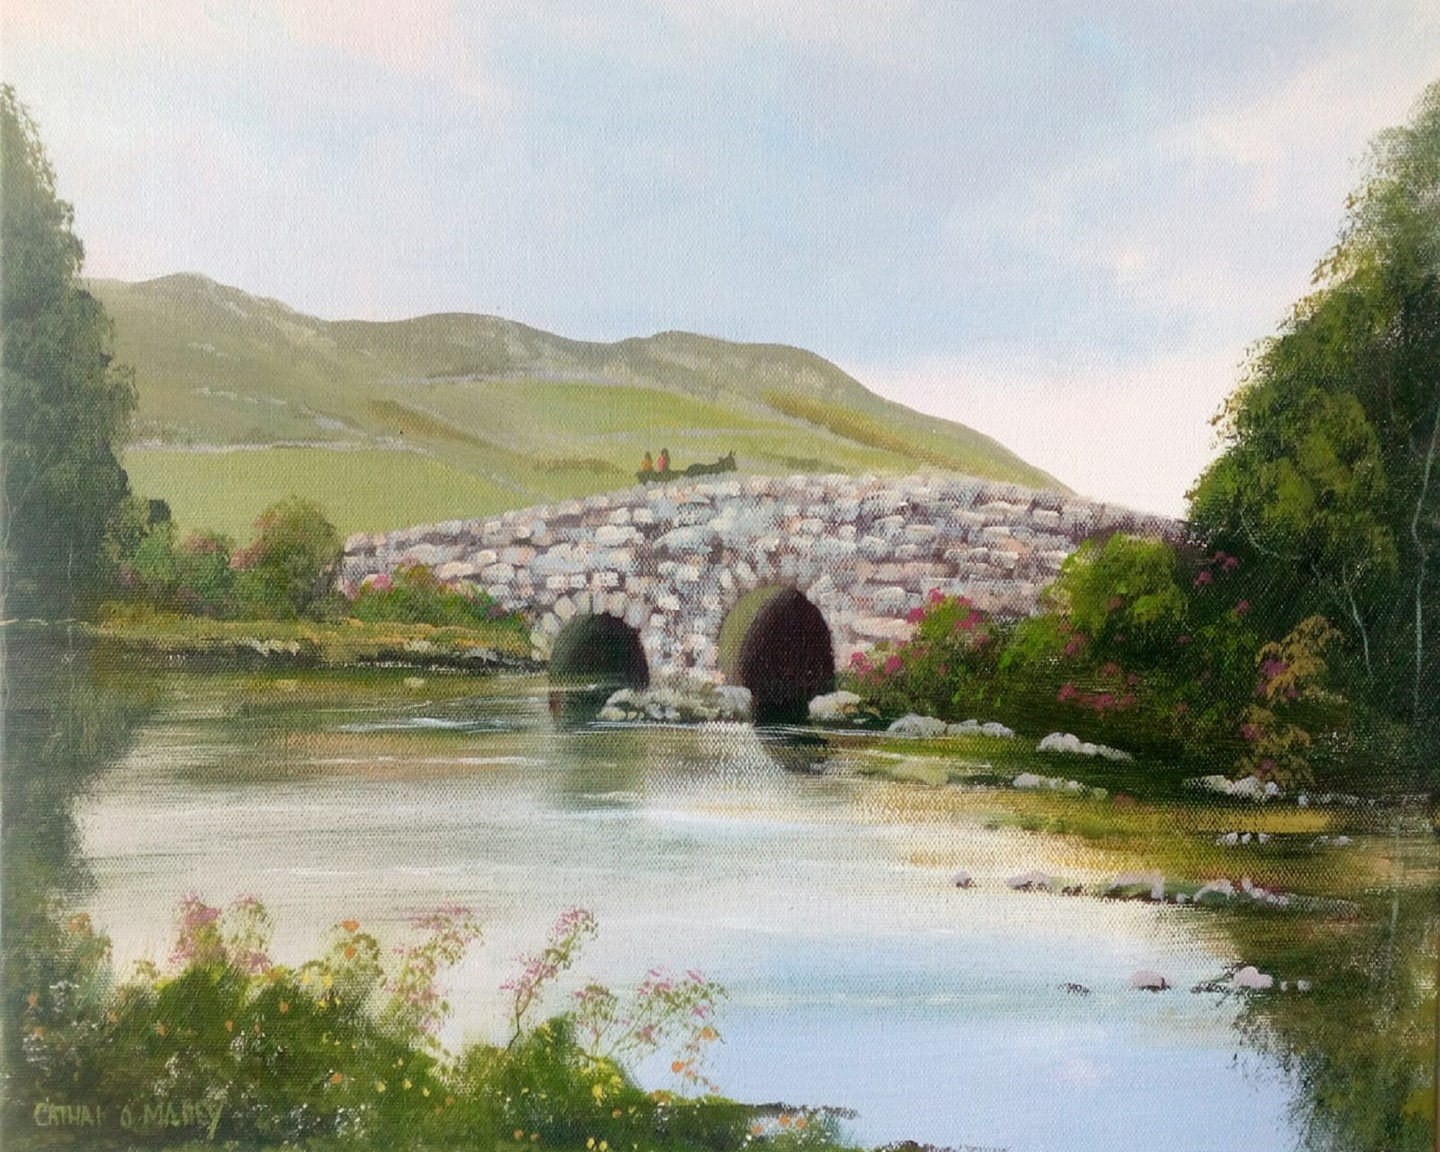 Cathal O Malley - quiet man bridge 2020